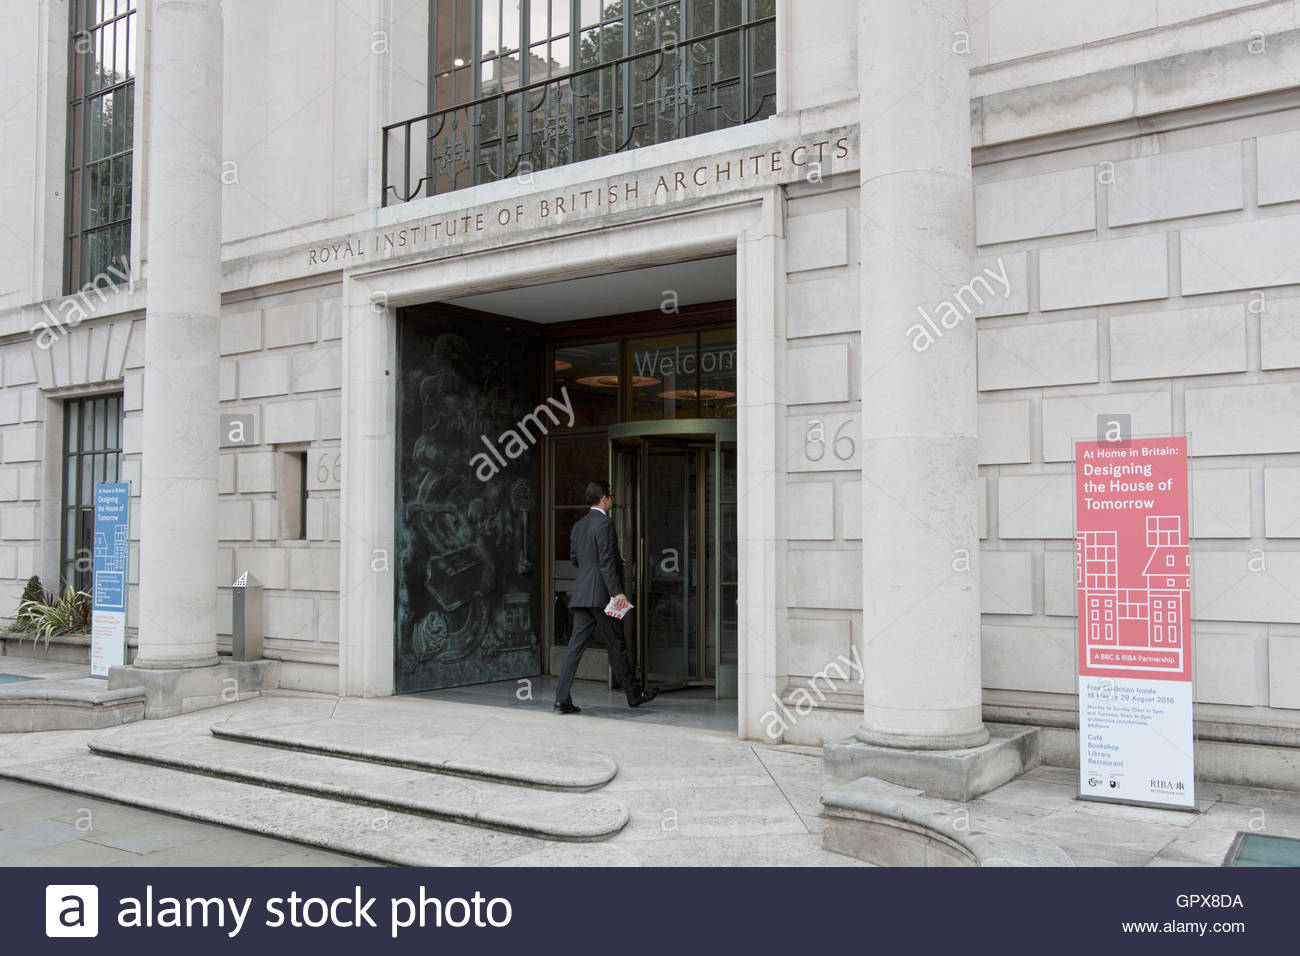 Entrance to 66 Portland Place the Royal Institute of British Architects: London. - Stock Image